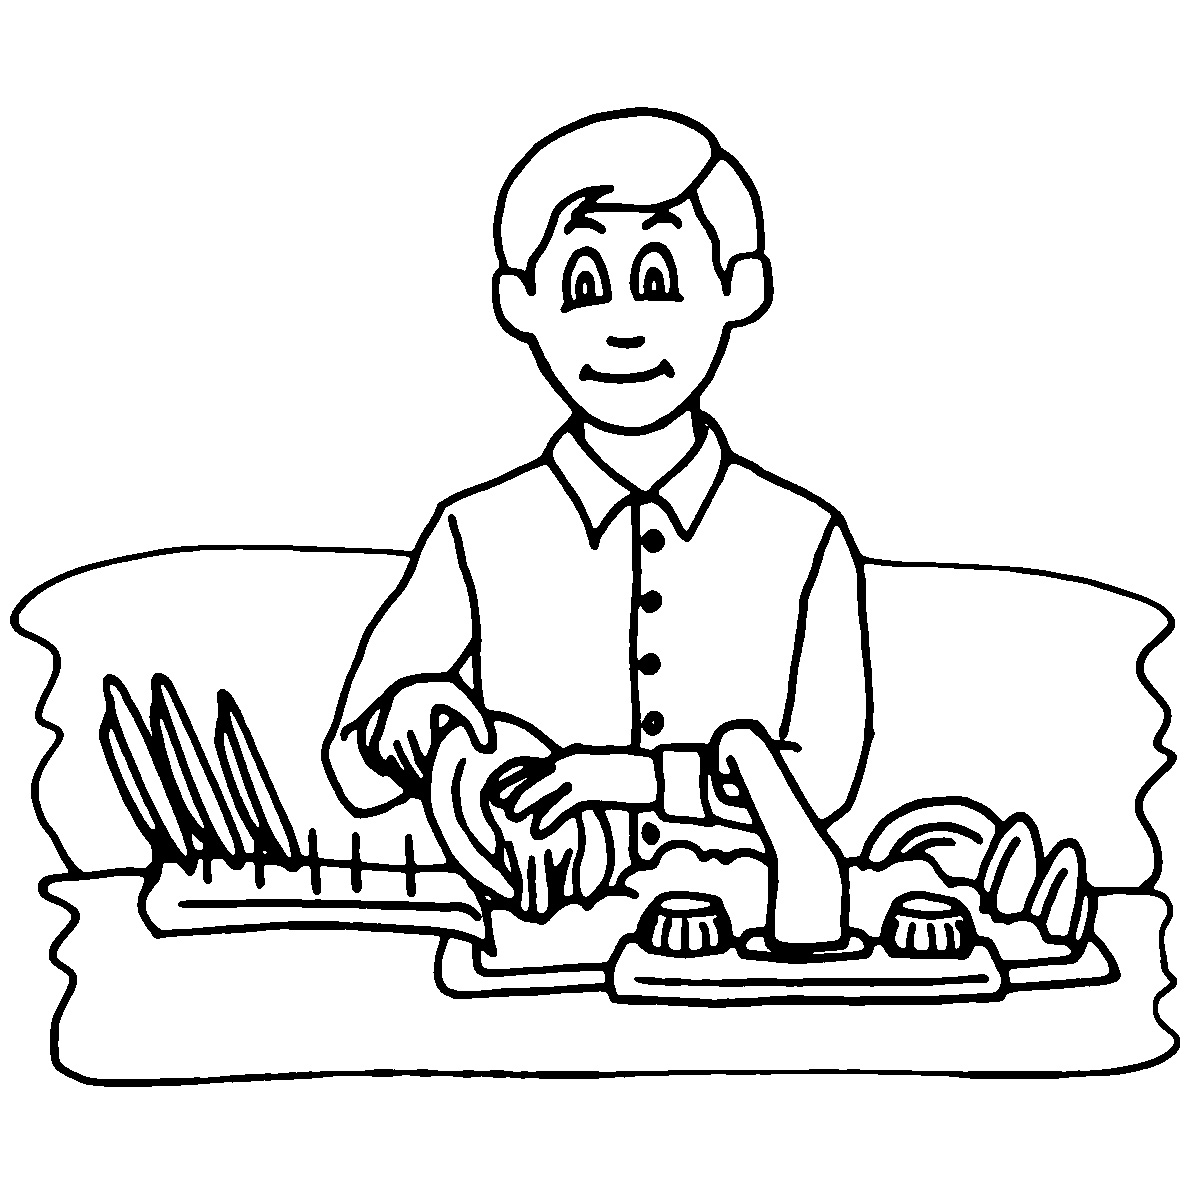 coloring pages kids chores by age | Household Chores Pictures - Cliparts.co